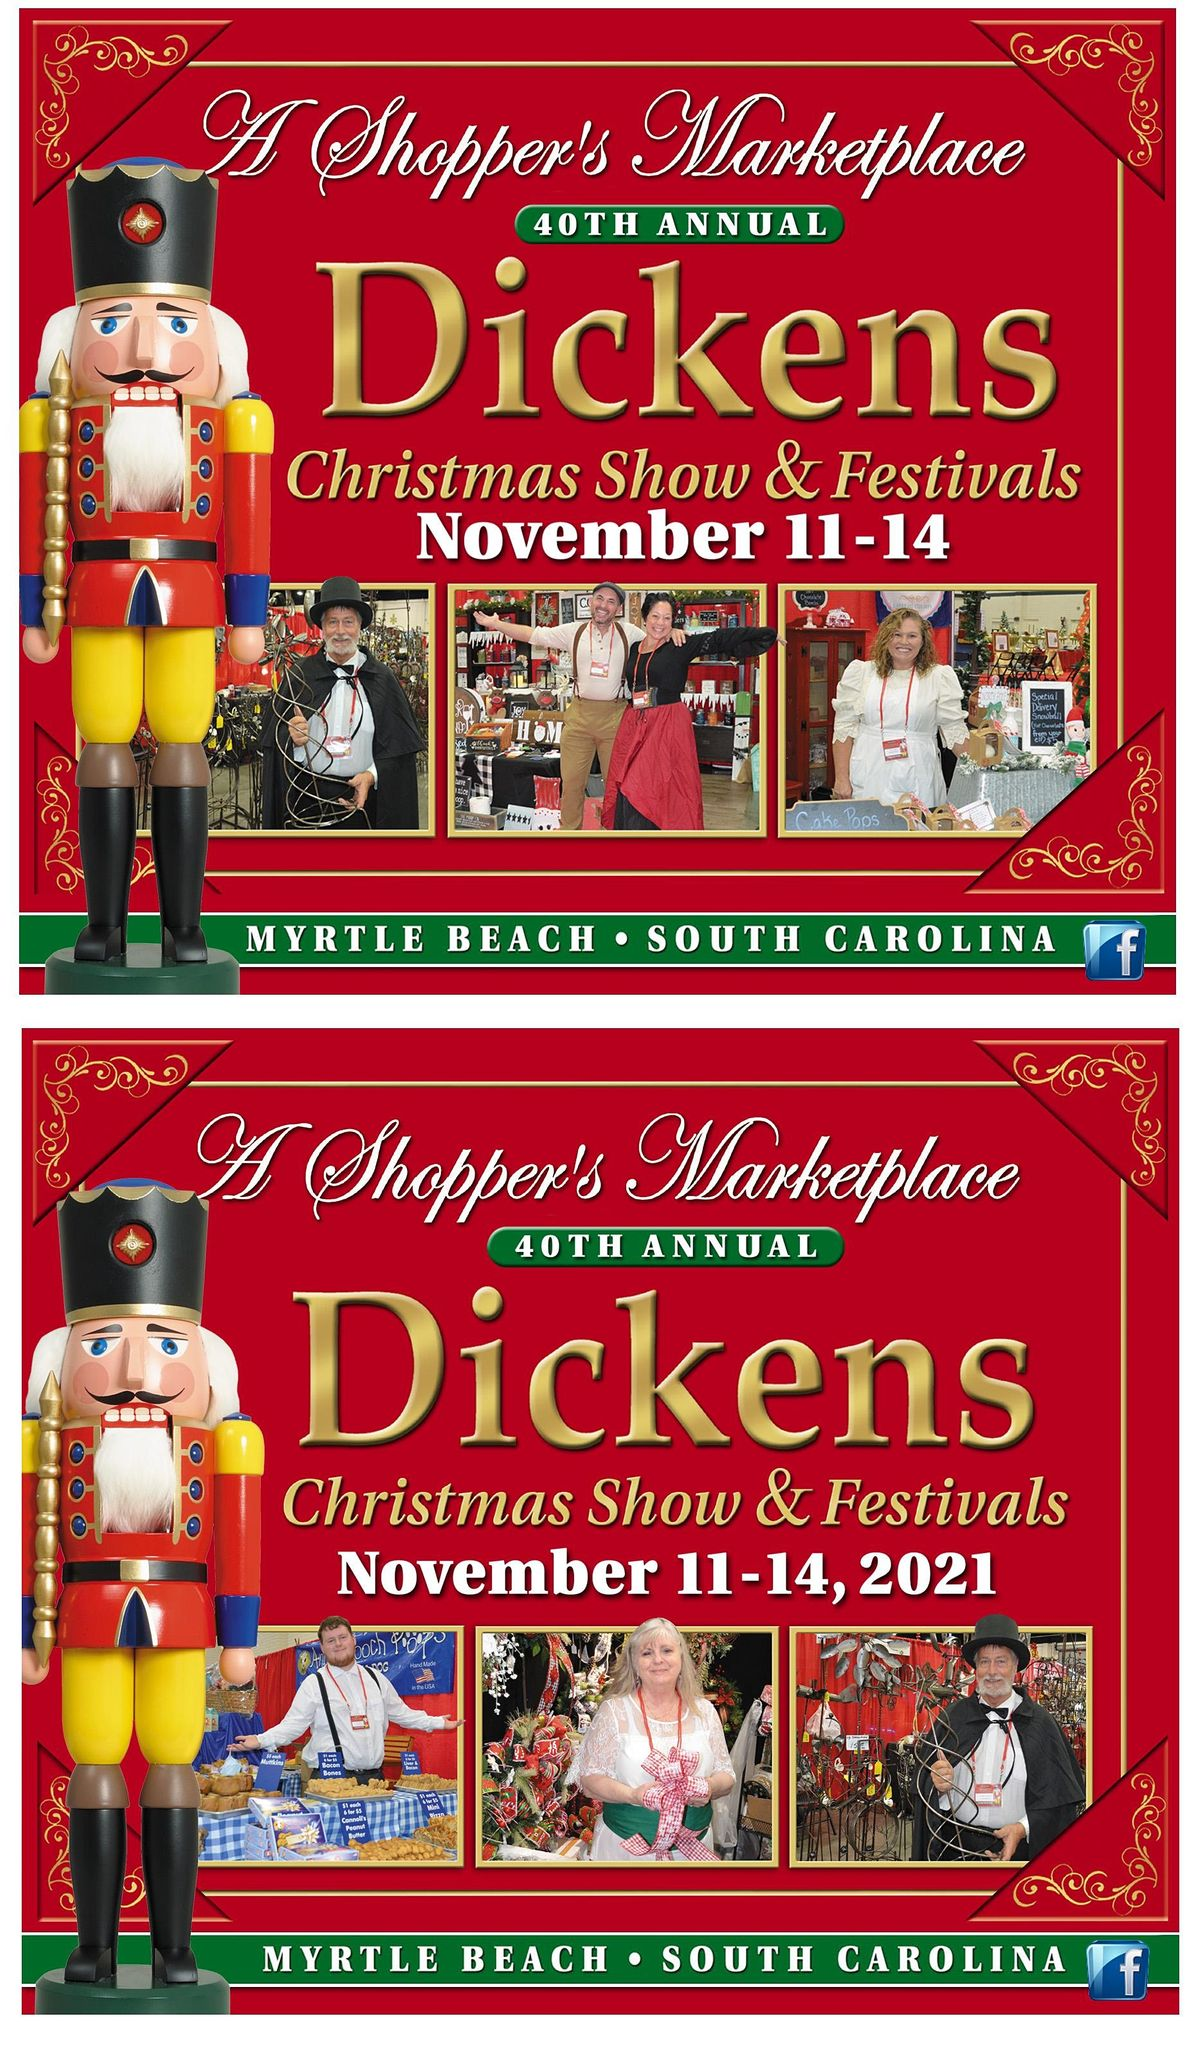 Myrtle Beach Christmas Events 2021 40th Annual Dickens Christmas Show Festivals Myrtle Beach Convention Center November 11 To November 14 Allevents In